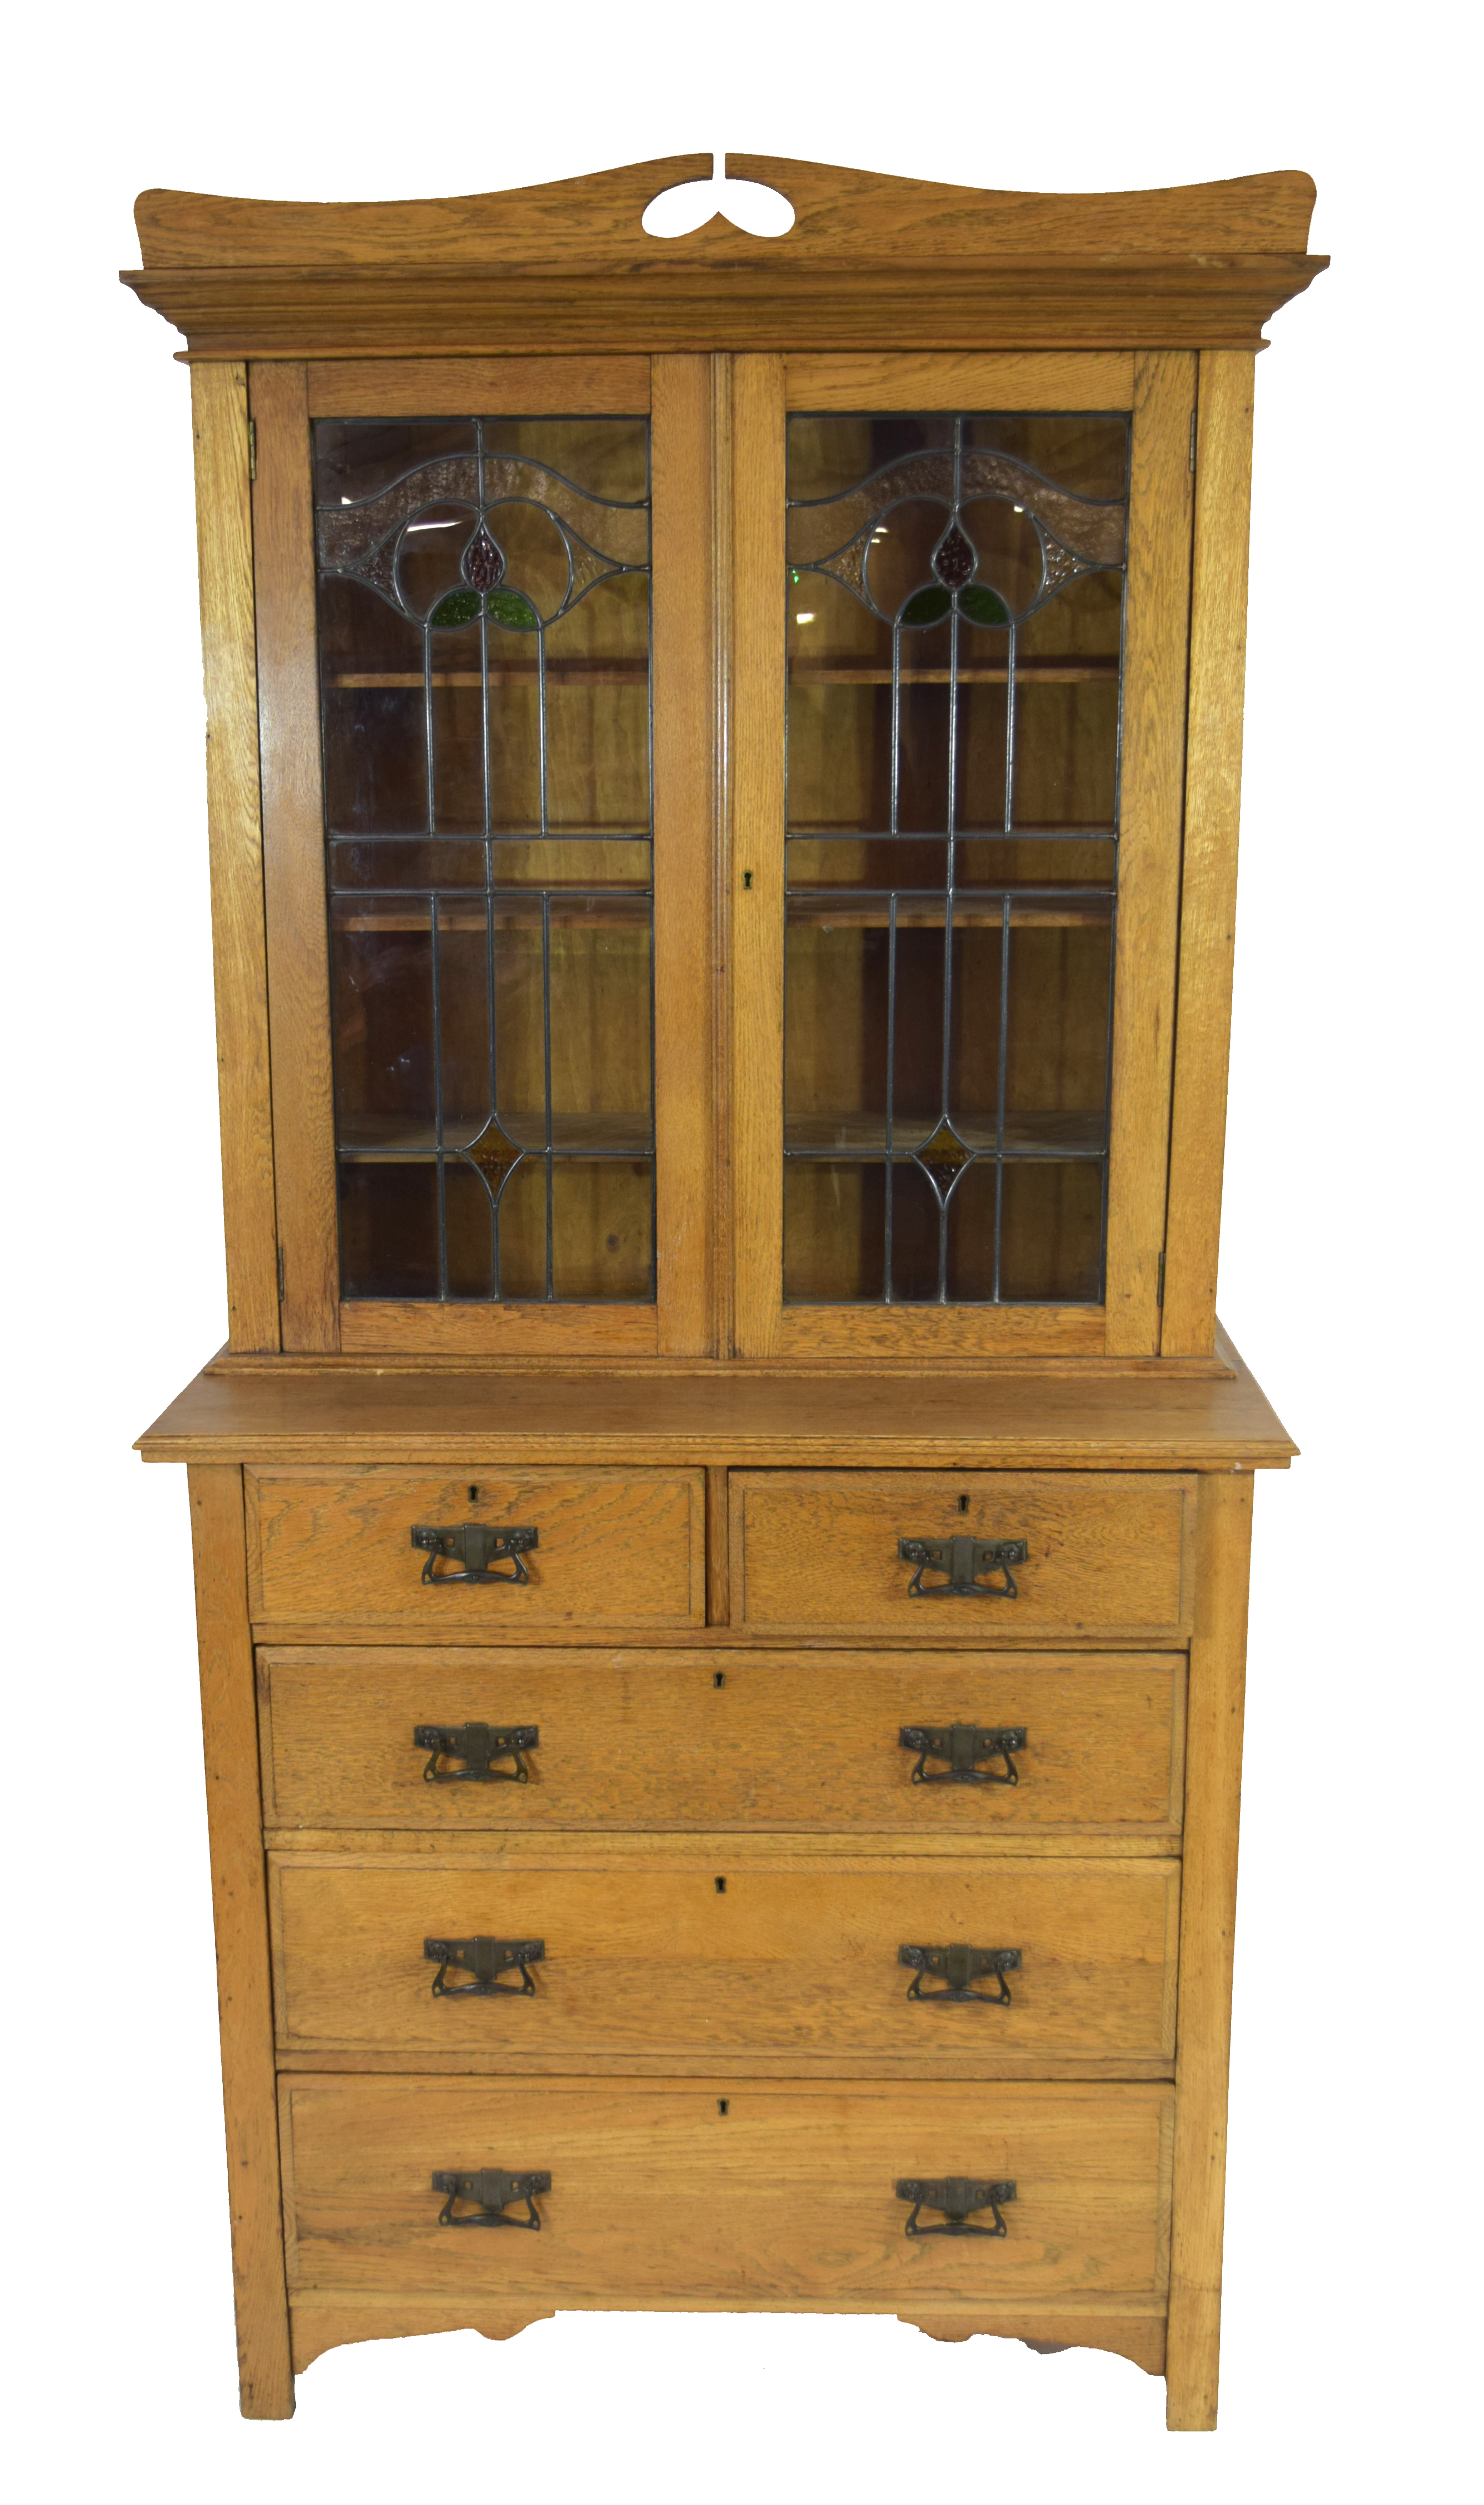 Late 19th century light oak two-piece cabinet, the top section with double glazed doors with Art